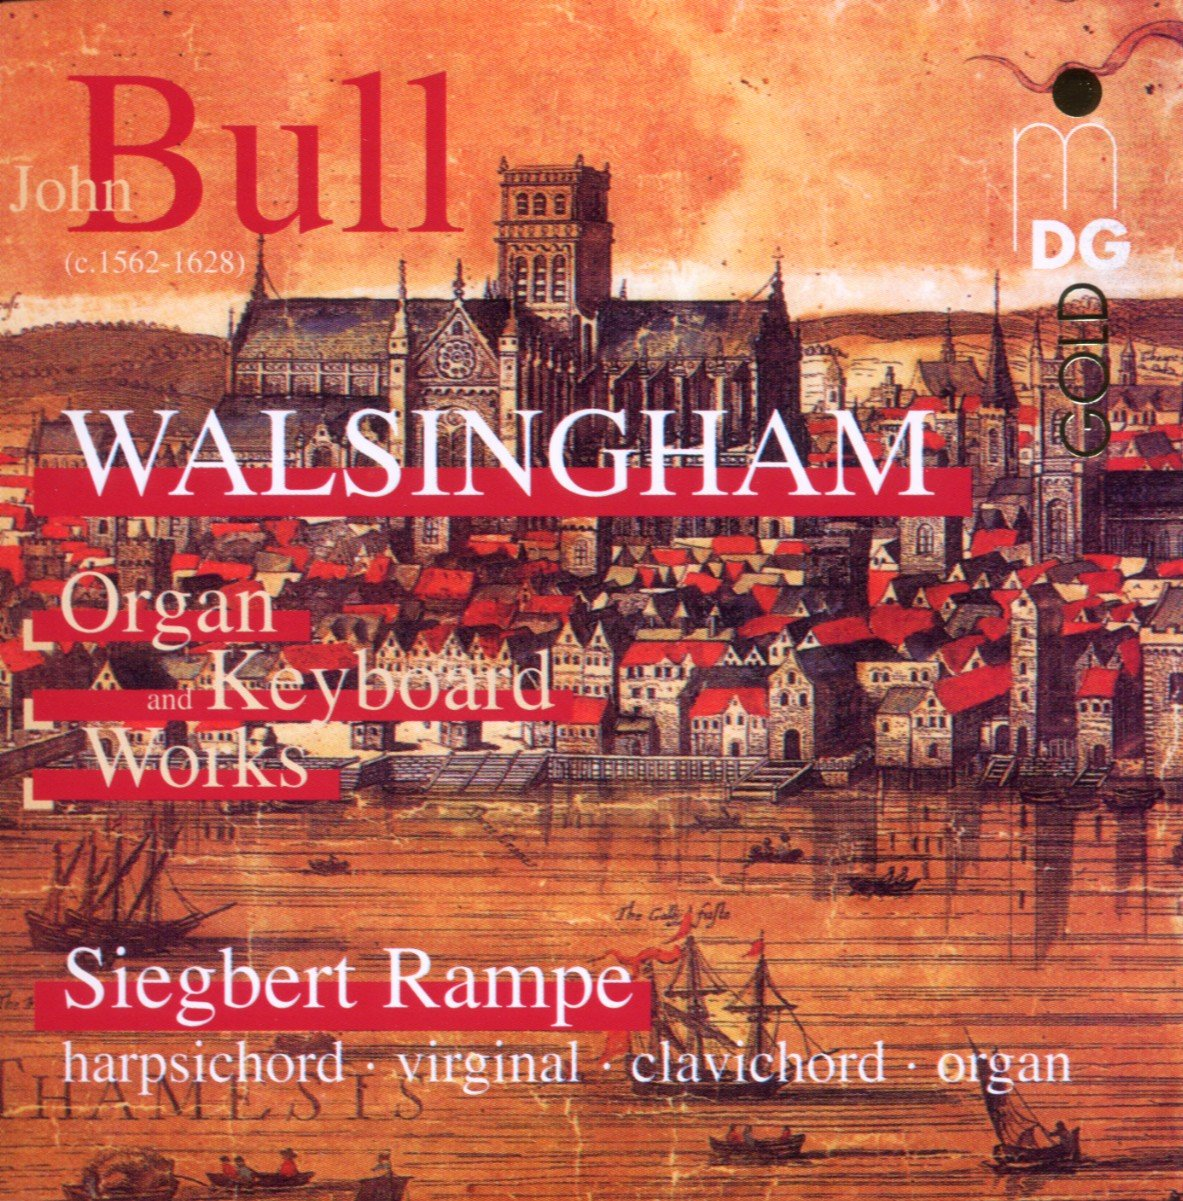 Bull: Walsingham Organ Discount is also underway Sale SALE% OFF and Keyboard Works